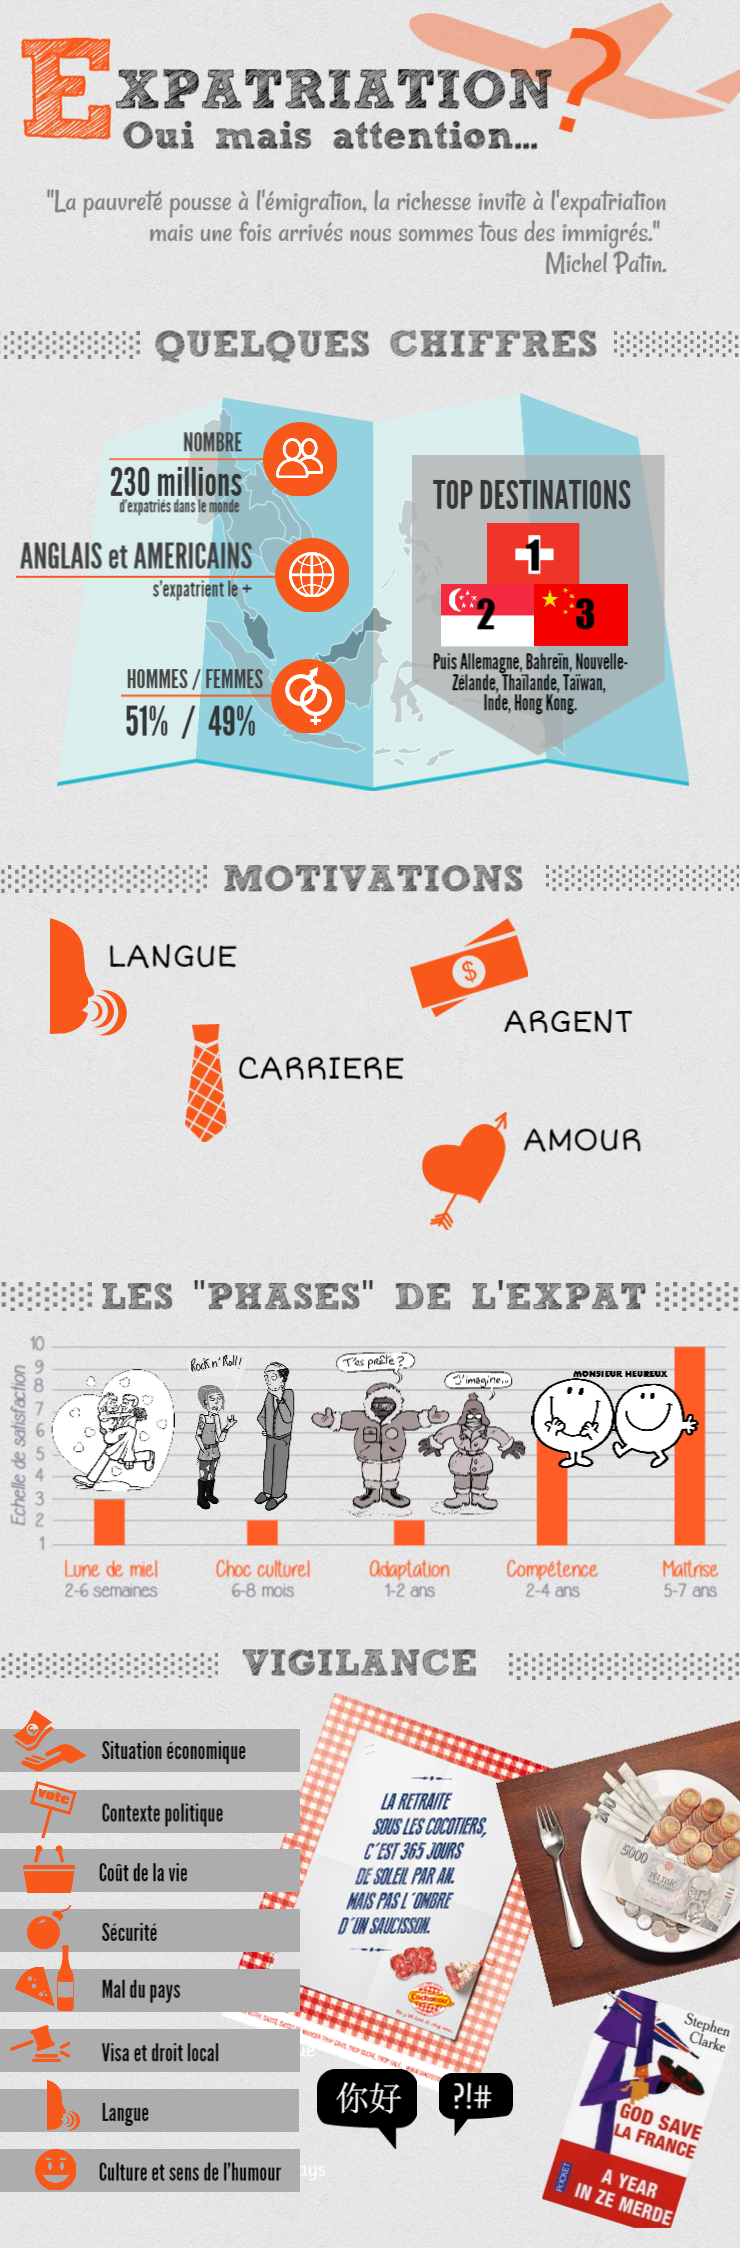 Infographie : L'expatriation, oui mais attention !